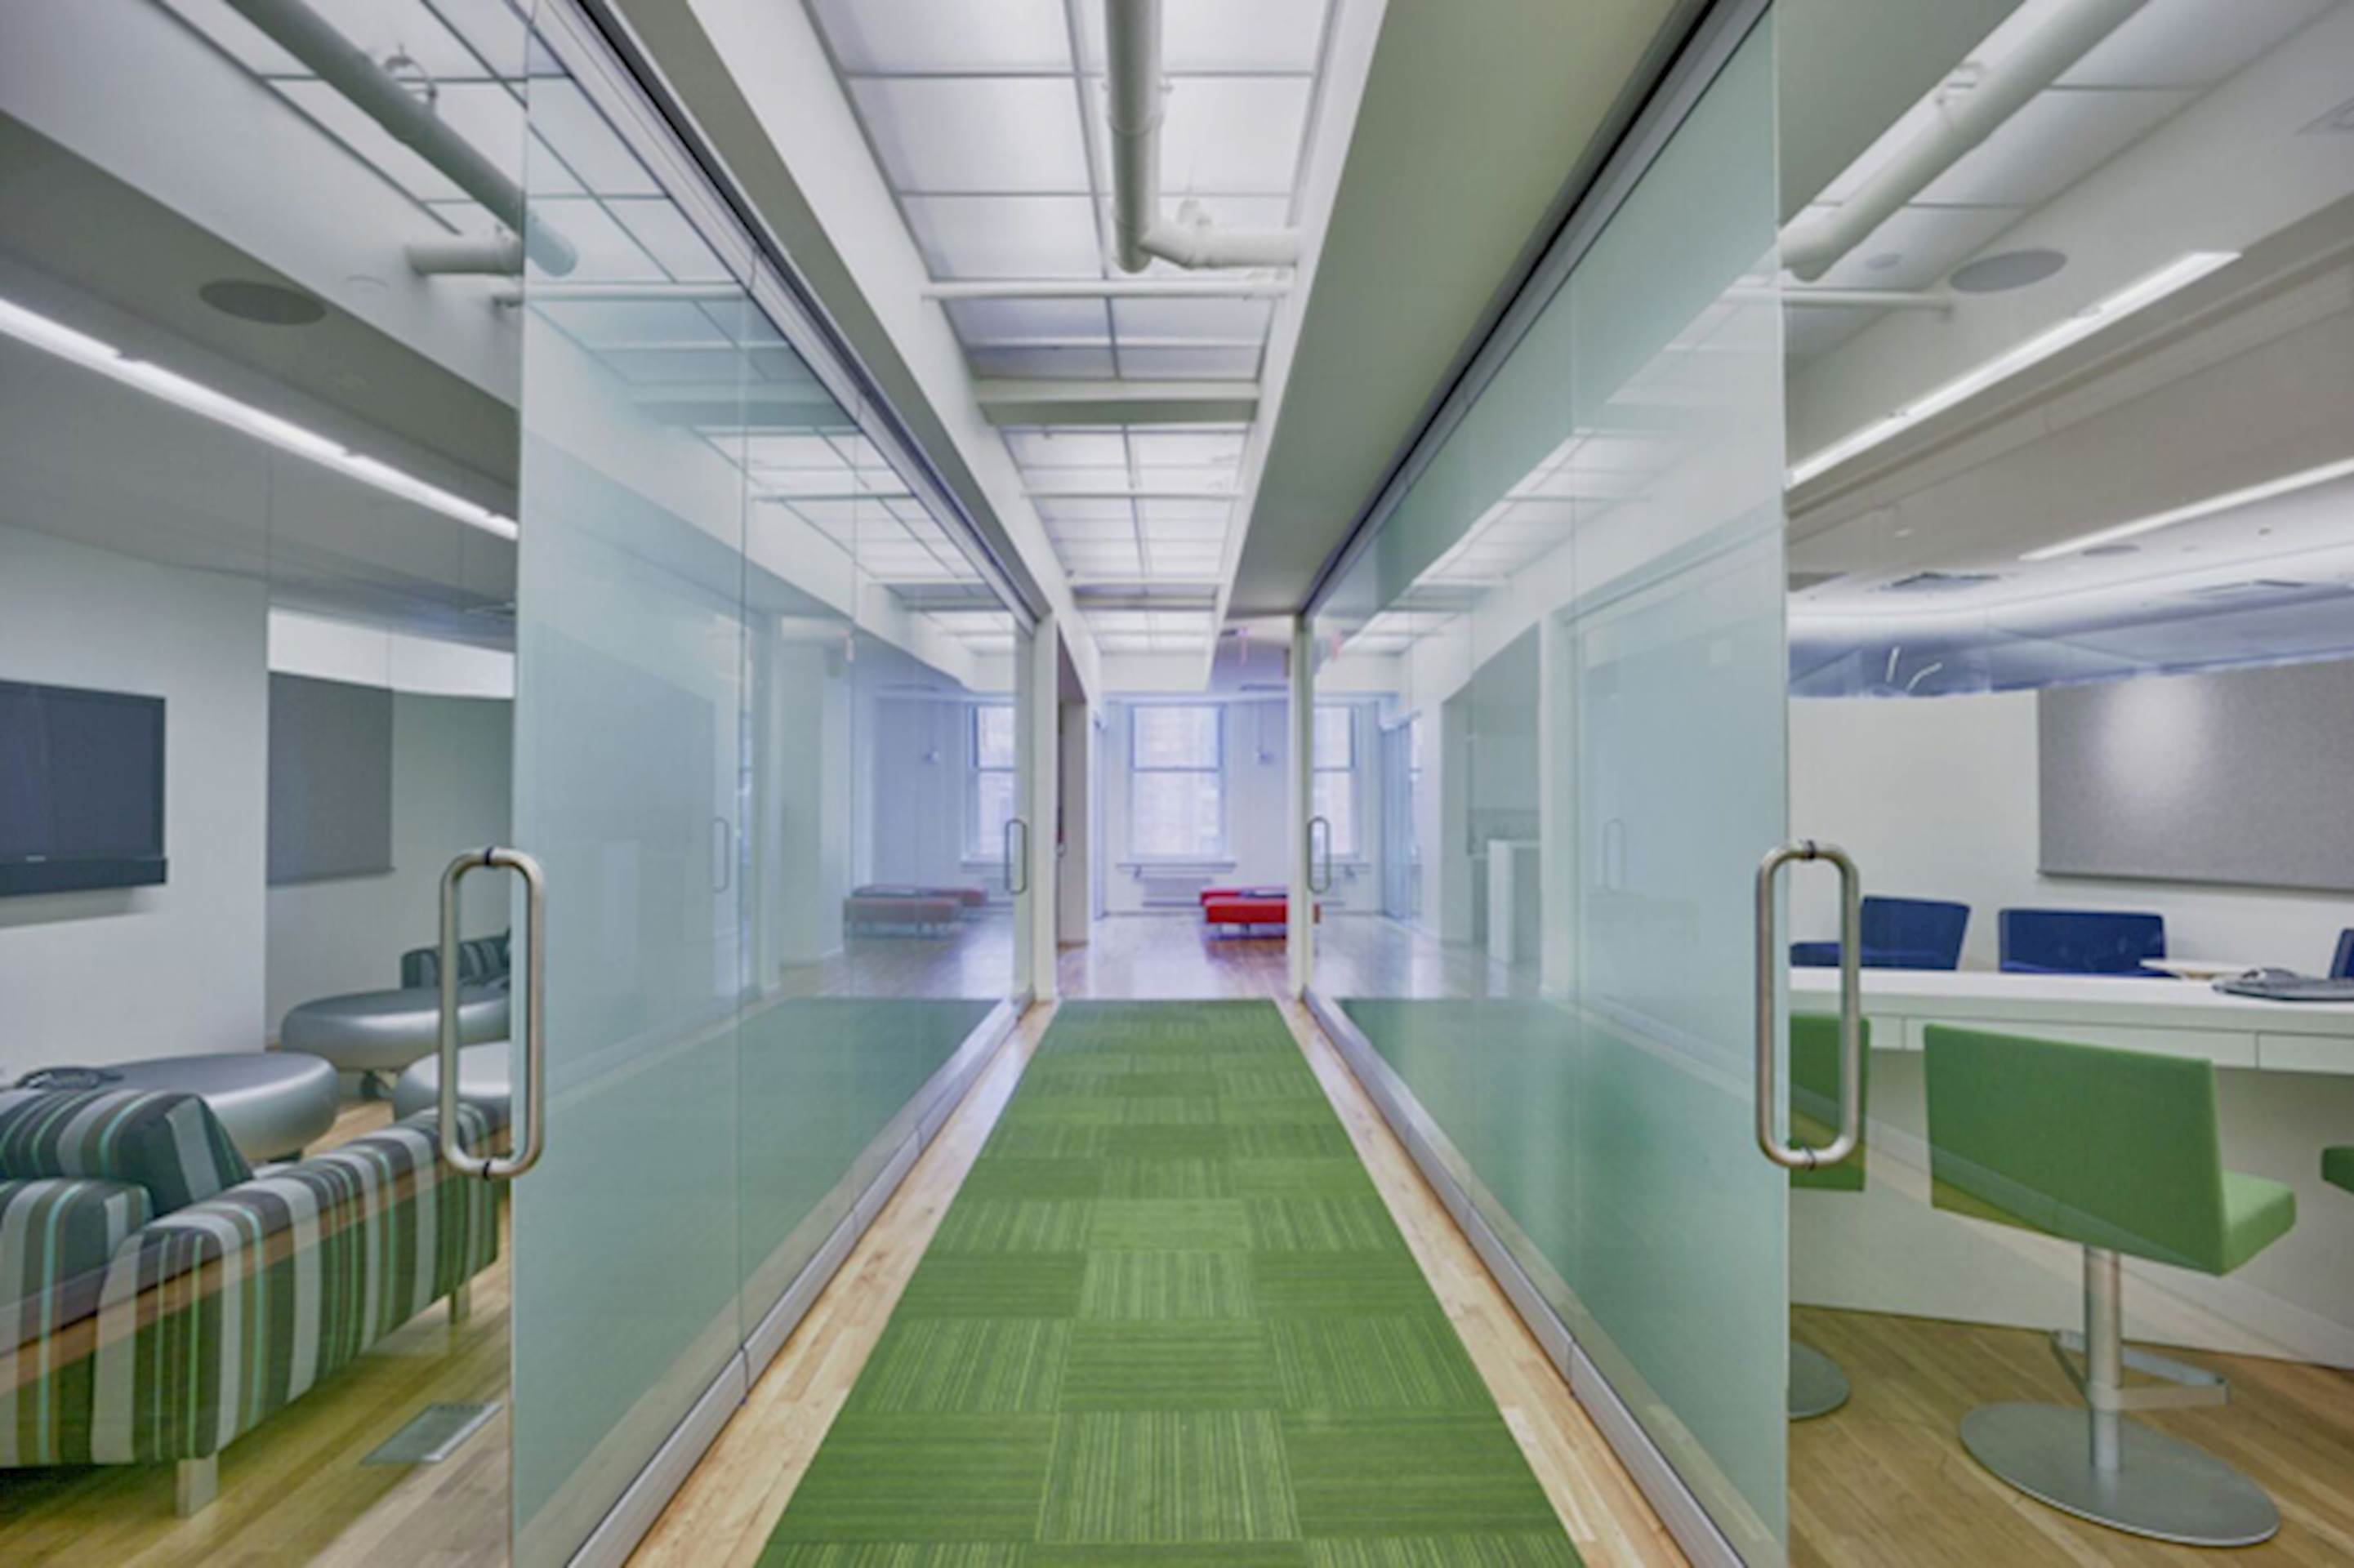 KWV-TEC movable glass walls systems from Kwik-Wall